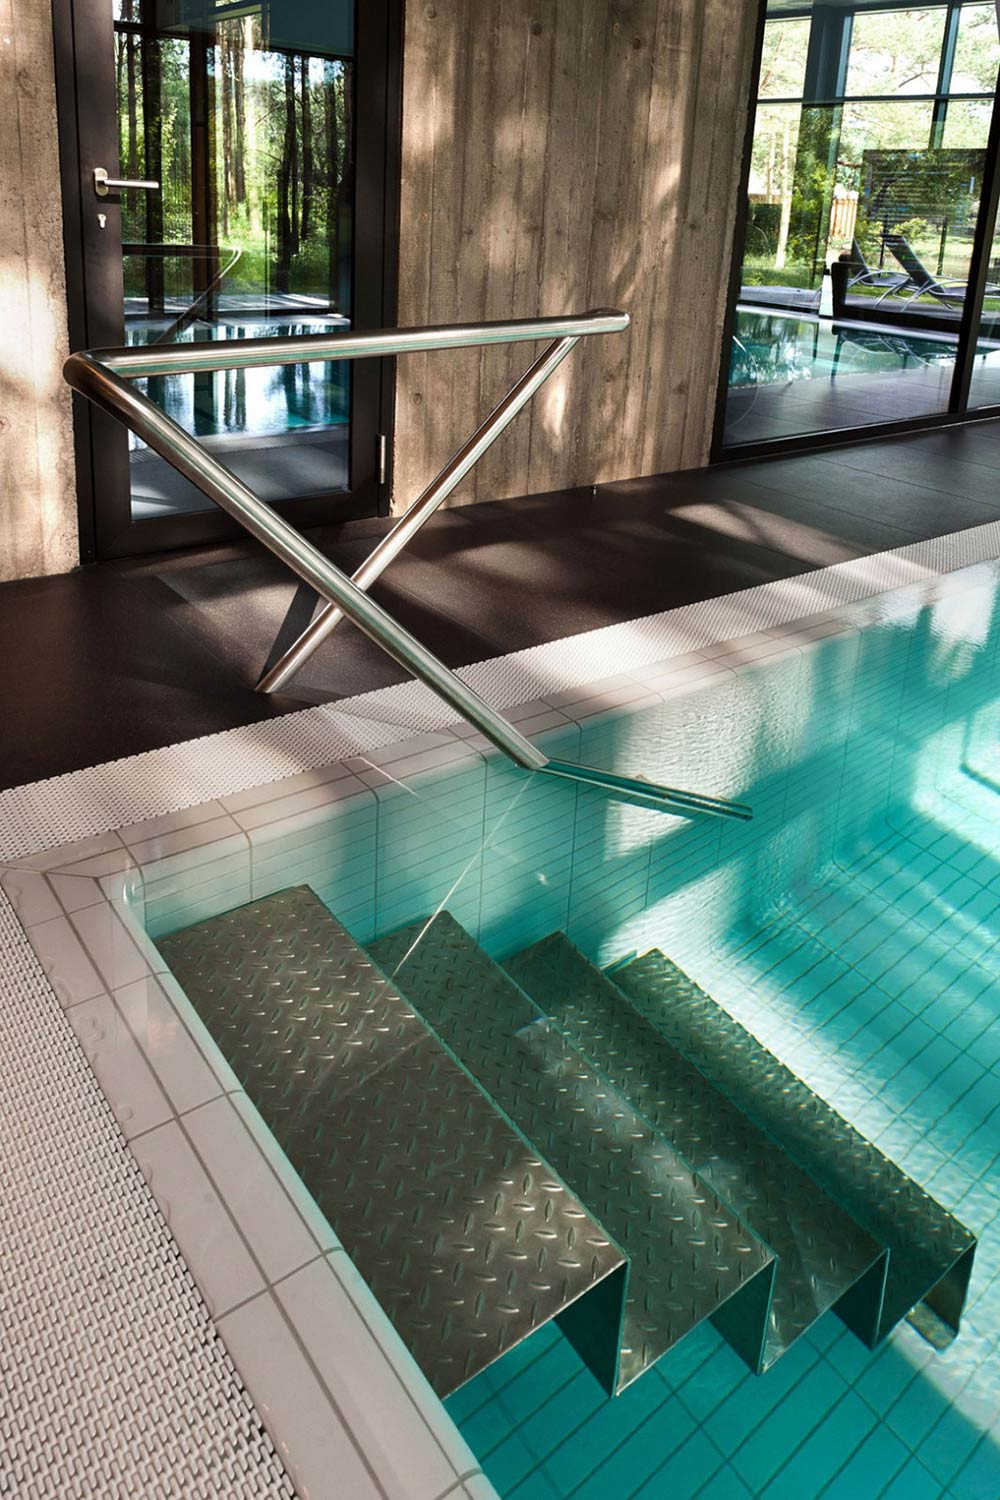 Indoor Swimming Pool, House in the Woods of Kaunas, Lithuania